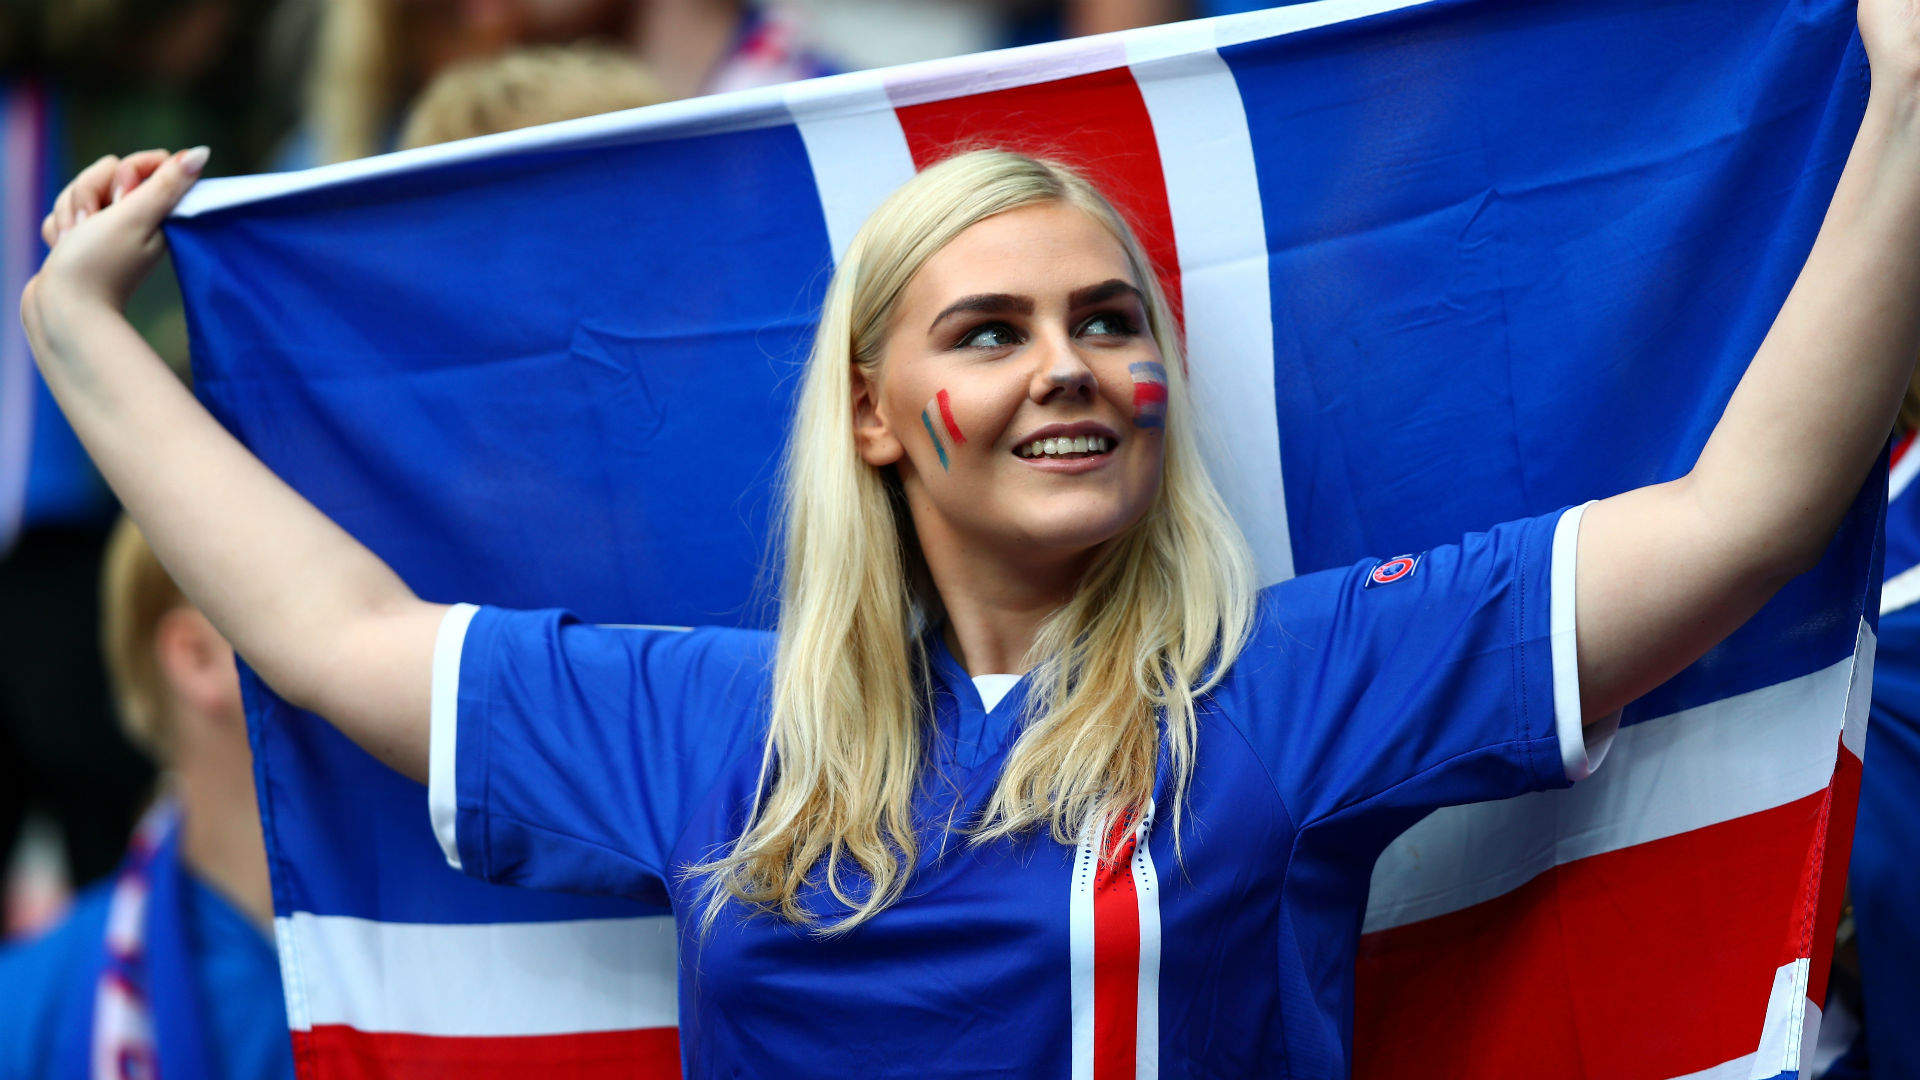 https://i0.wp.com/images.performgroup.com/di/library/GOAL/66/9/france-iceland-uefa-euro-2016_lj3qsy9ph06s1ddqh39f3pgua.jpg